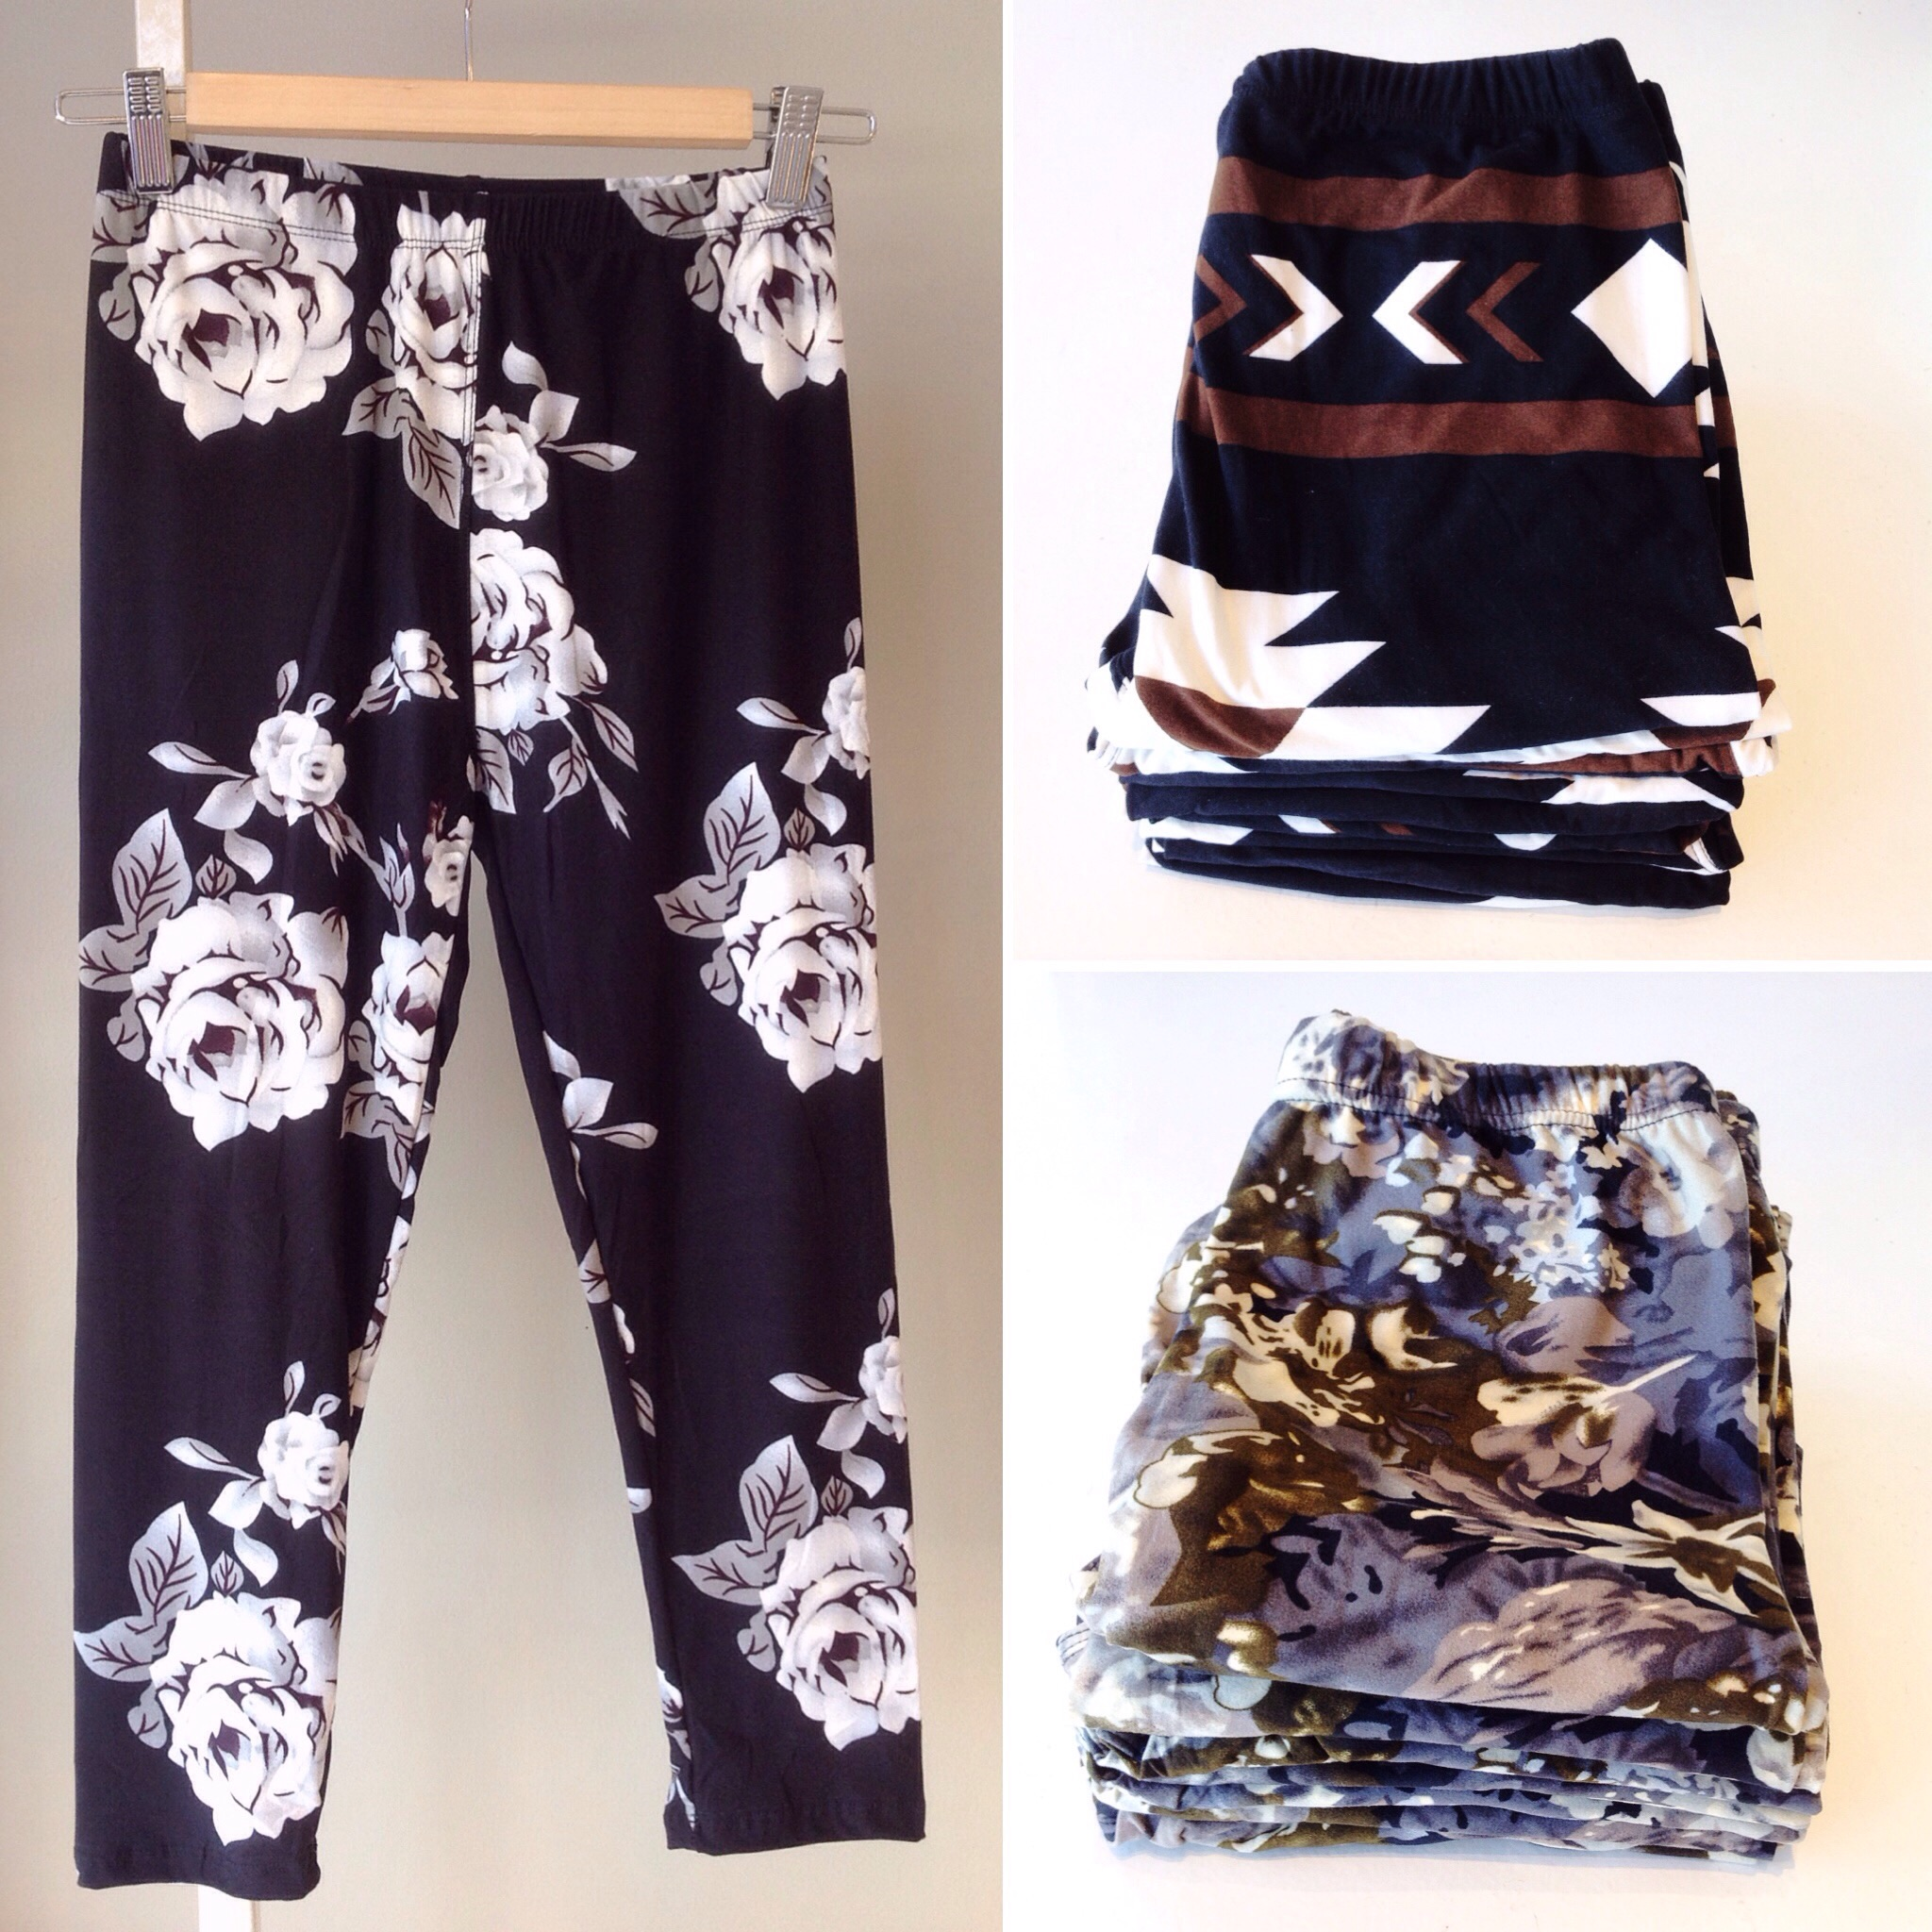 Cropped one size leggings, $21